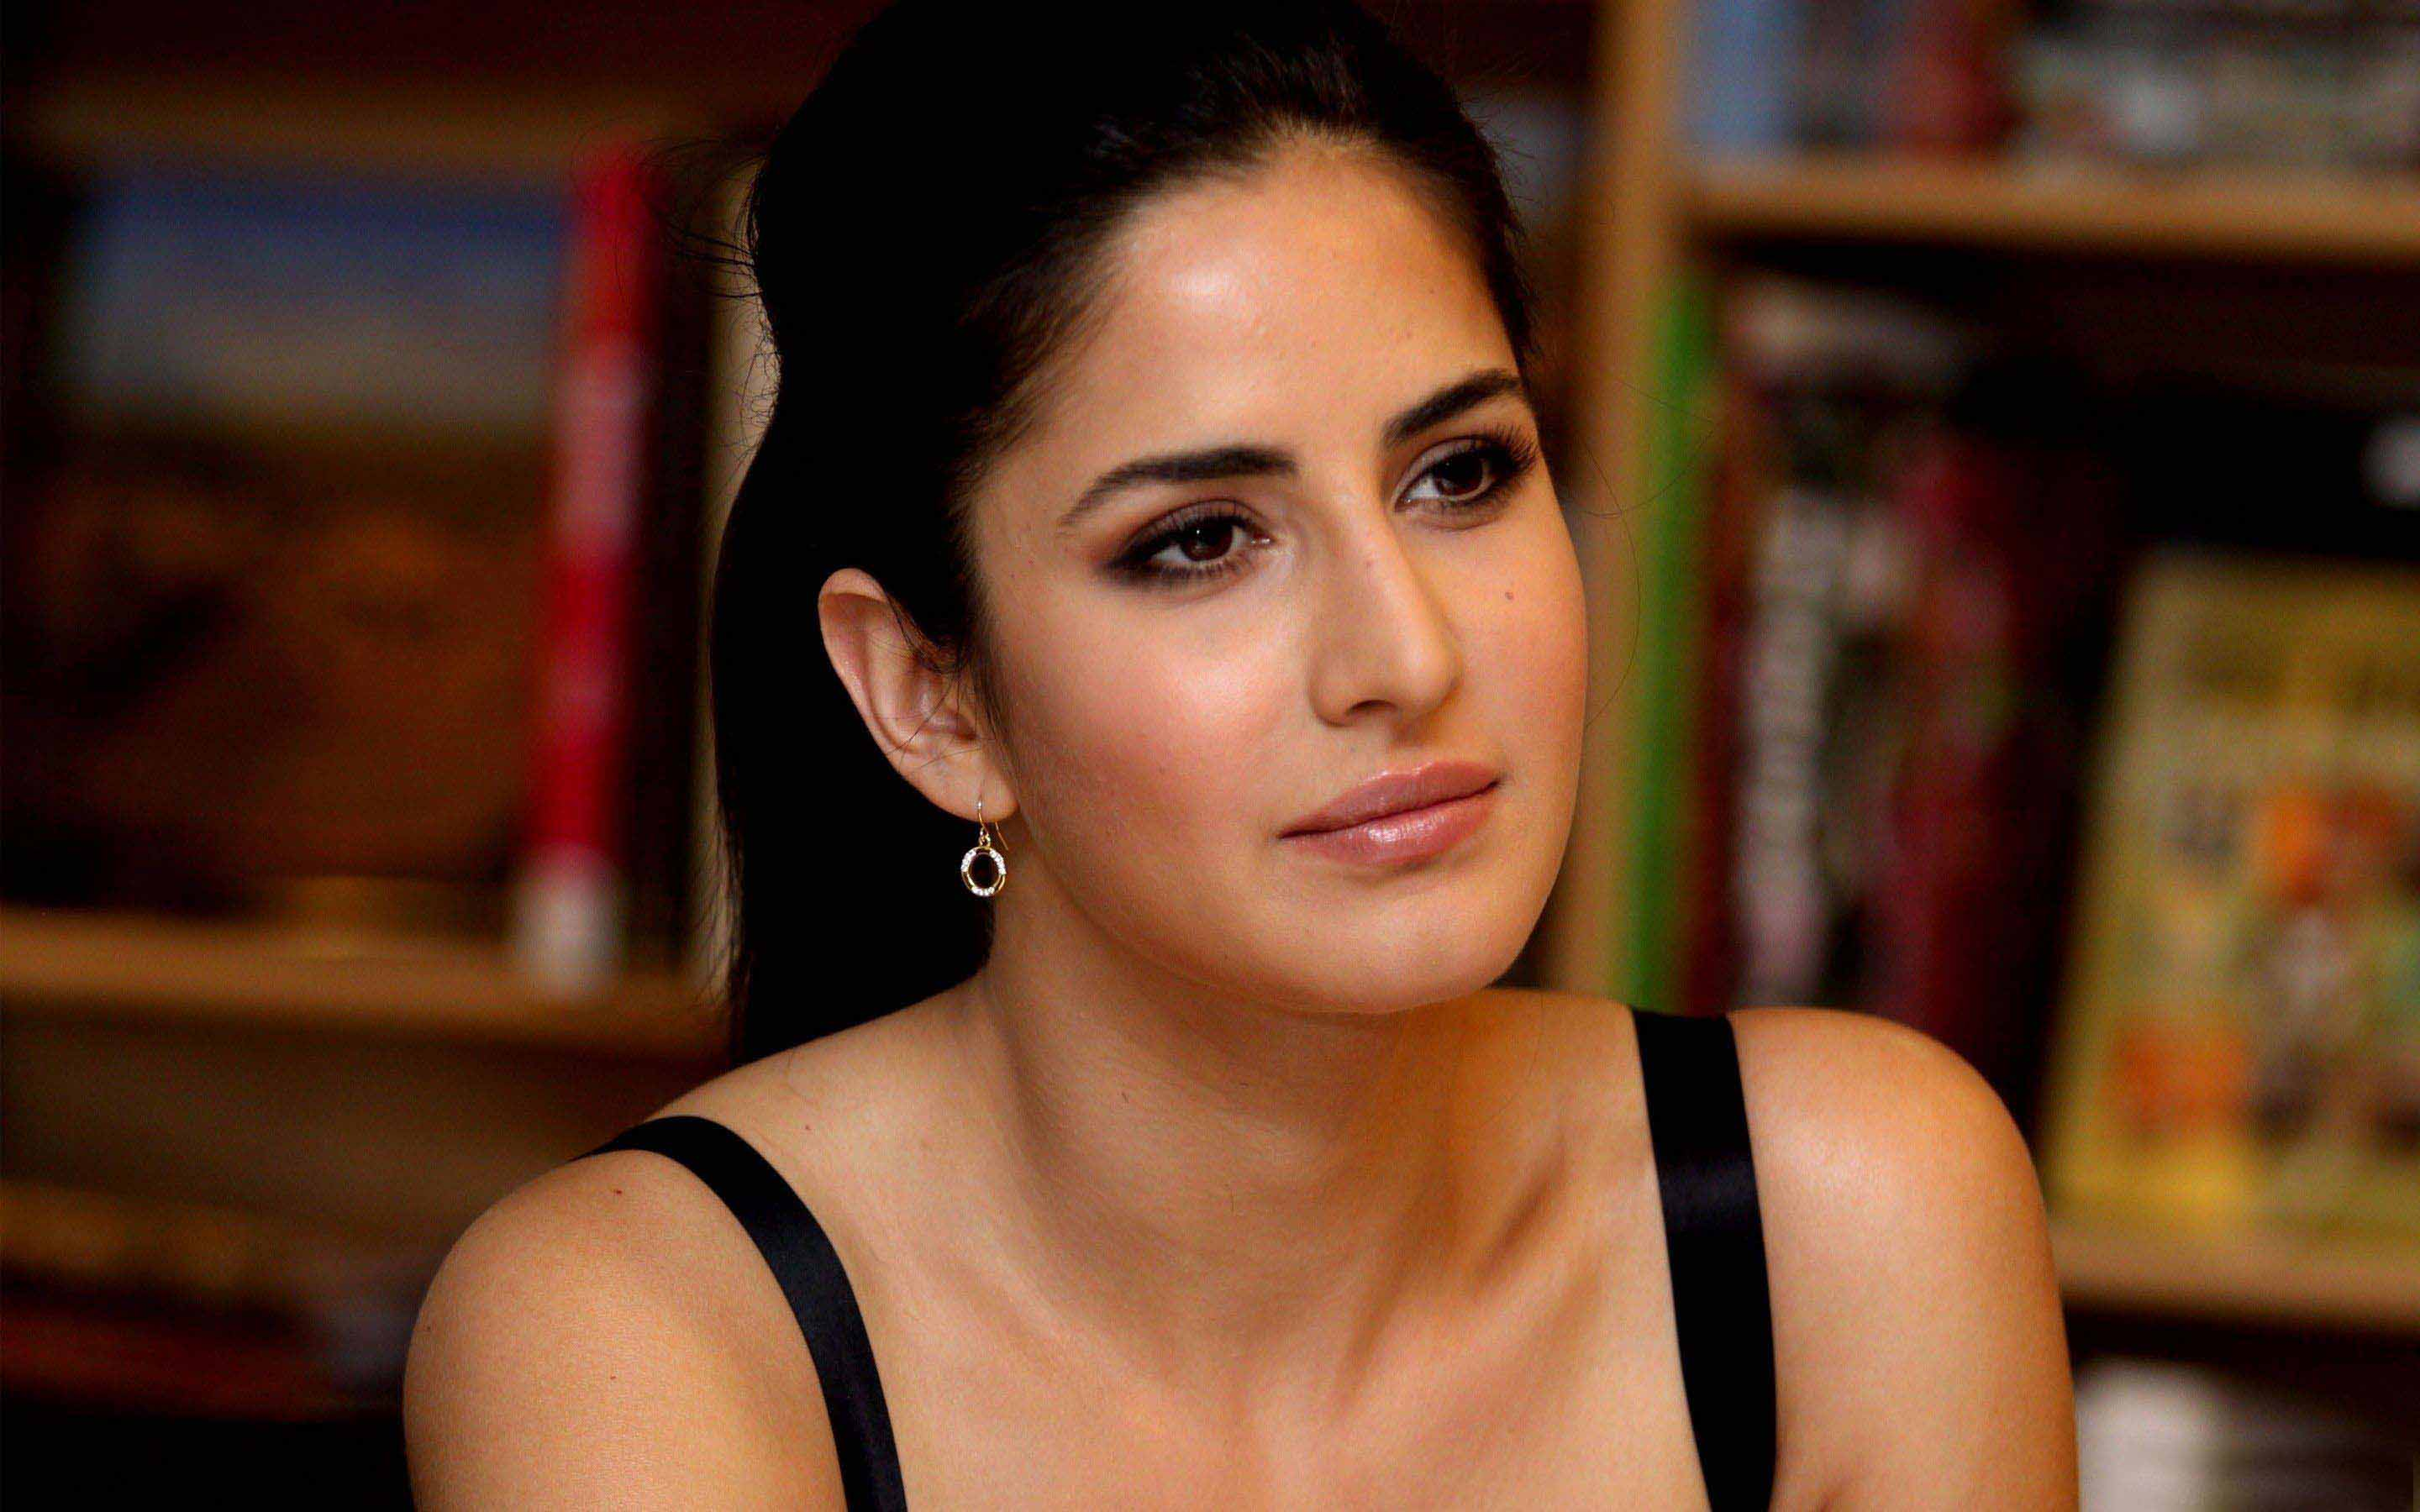 hd wallpapers of katrina kaif - wallpaper cave